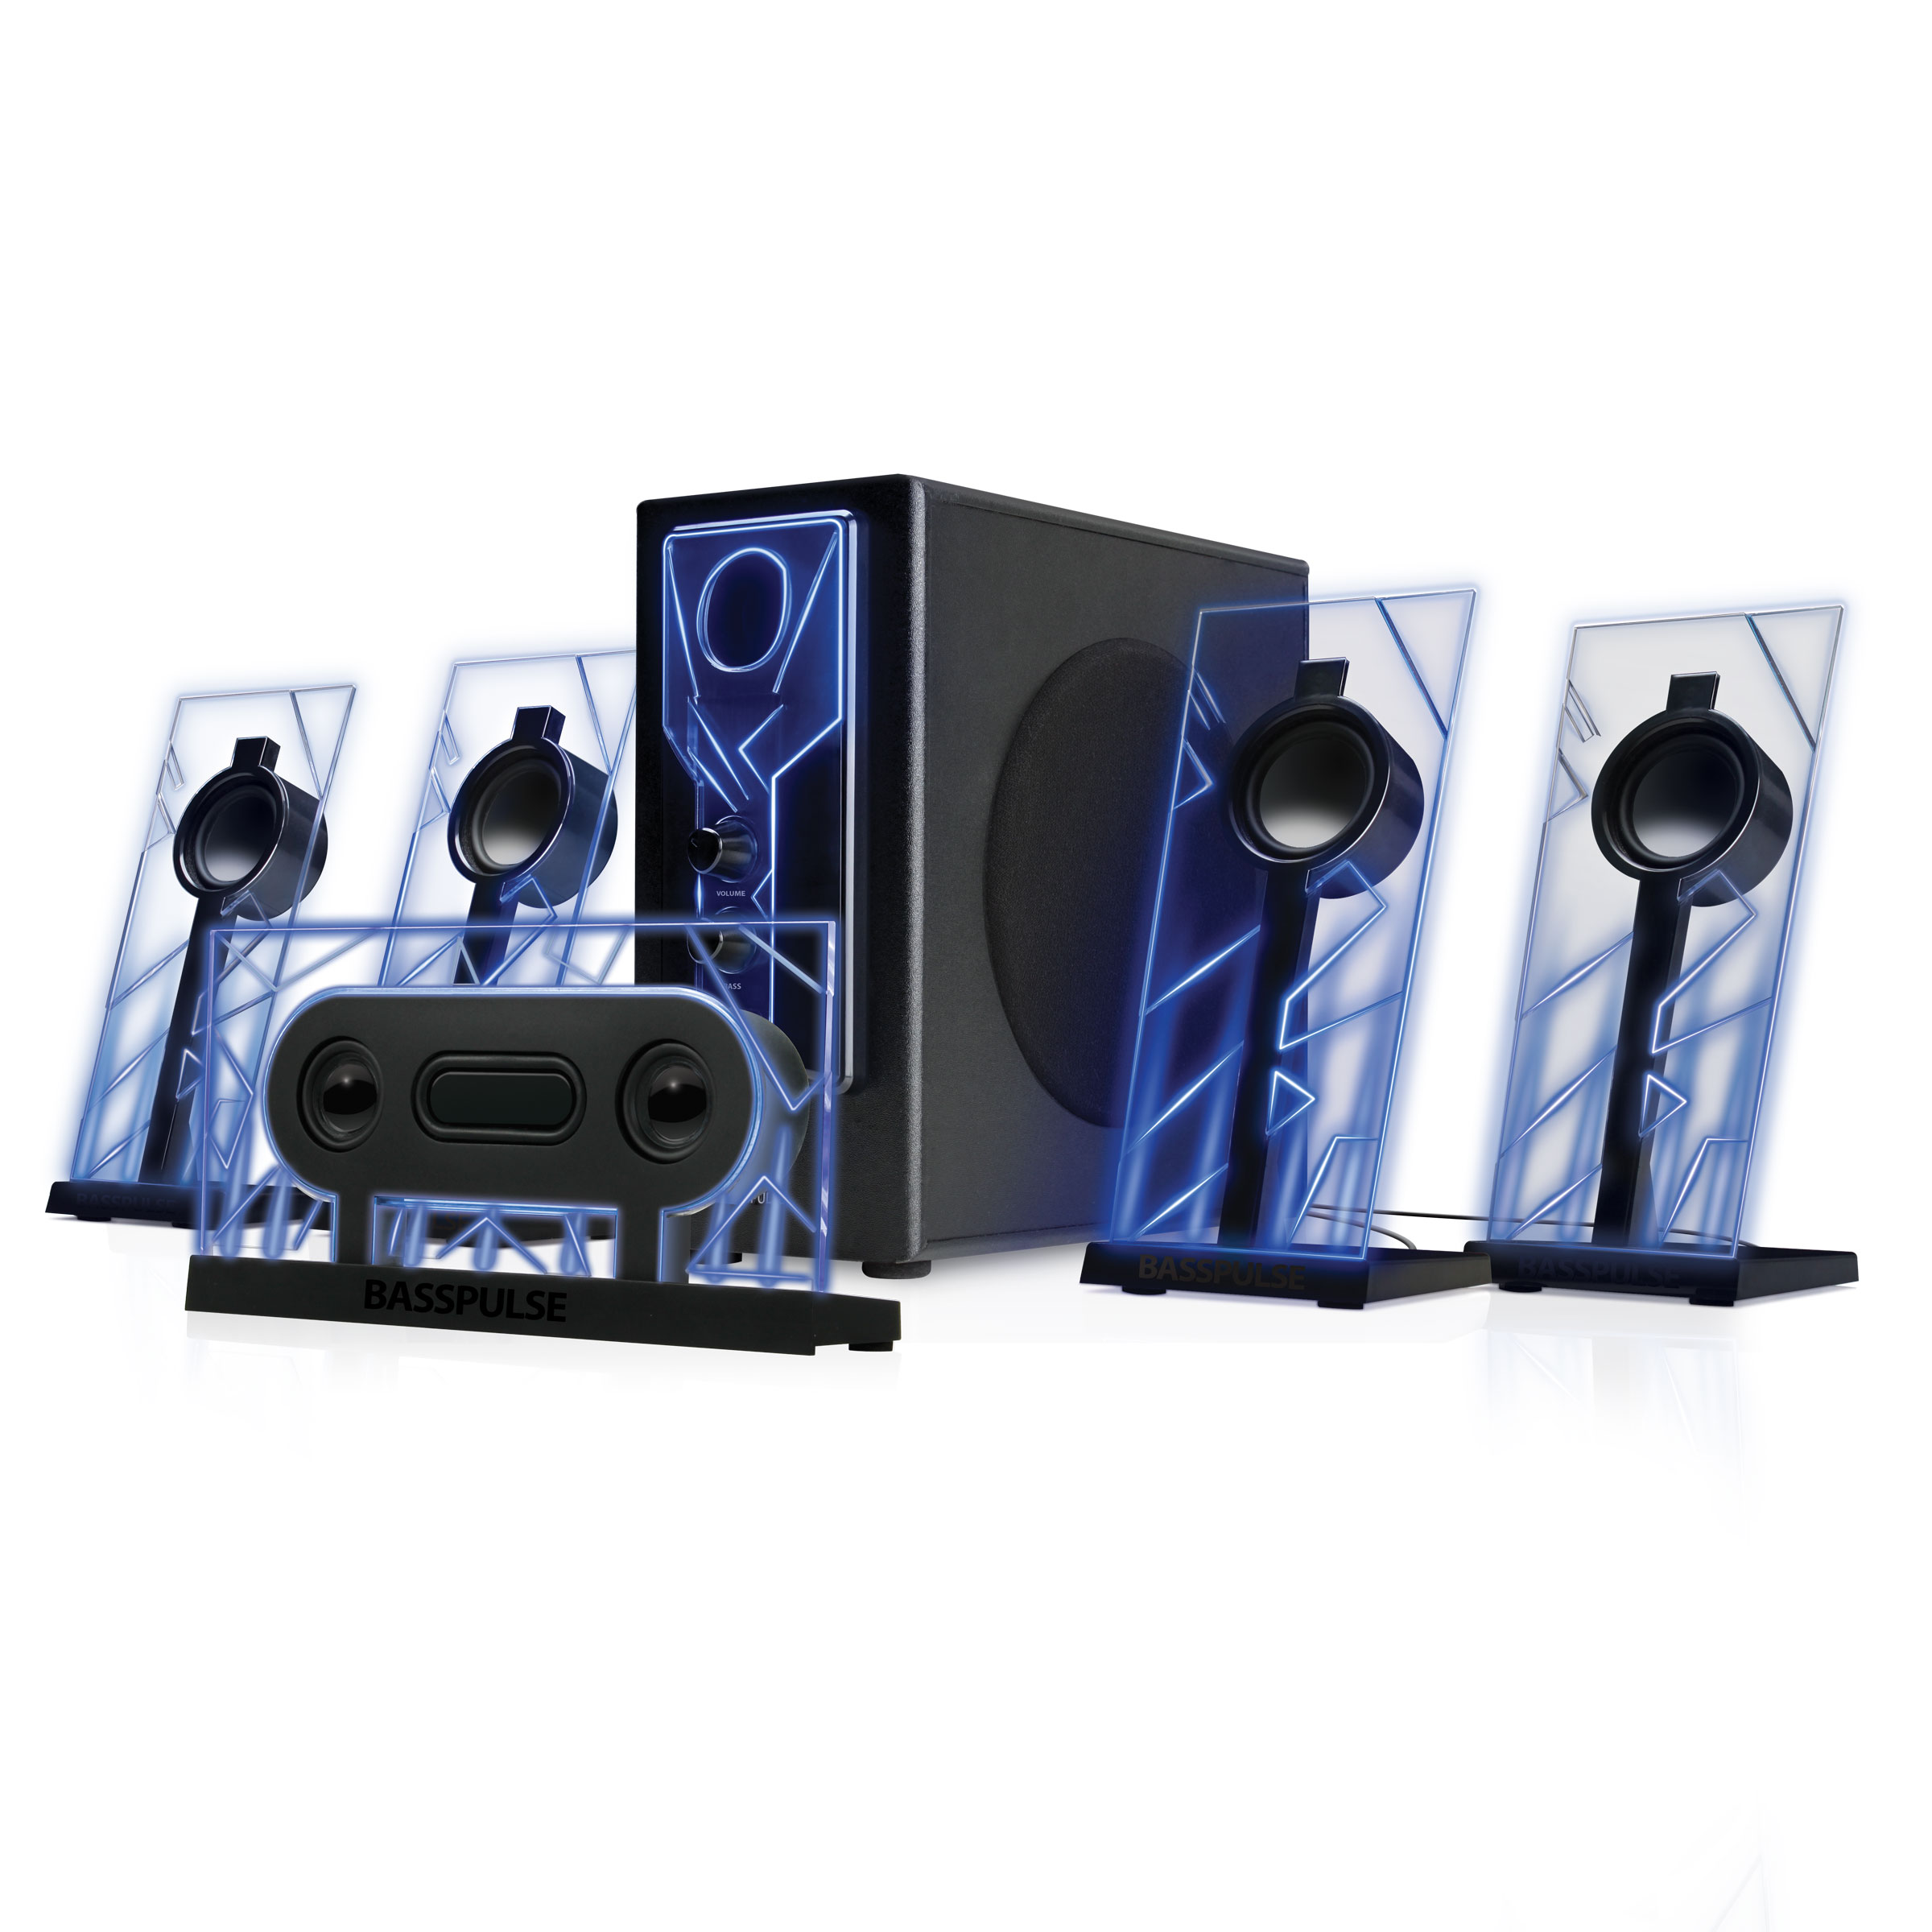 5.1 Surround Sound Computer Speakers with 80 Watts and Blue LED Glow ...